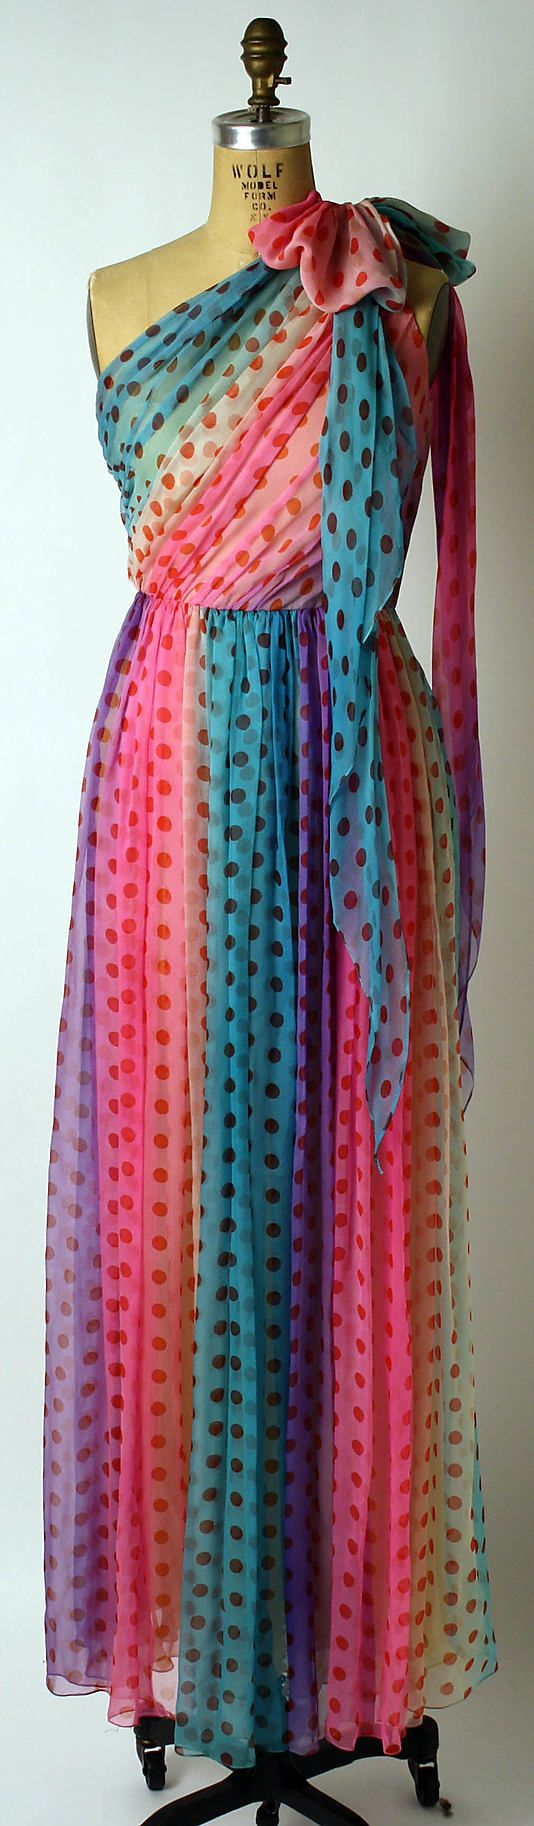 This looks like a 1970s Barbie dress!  It's a polka dot silk rainbow dress, ca 1974, by Bill Blass